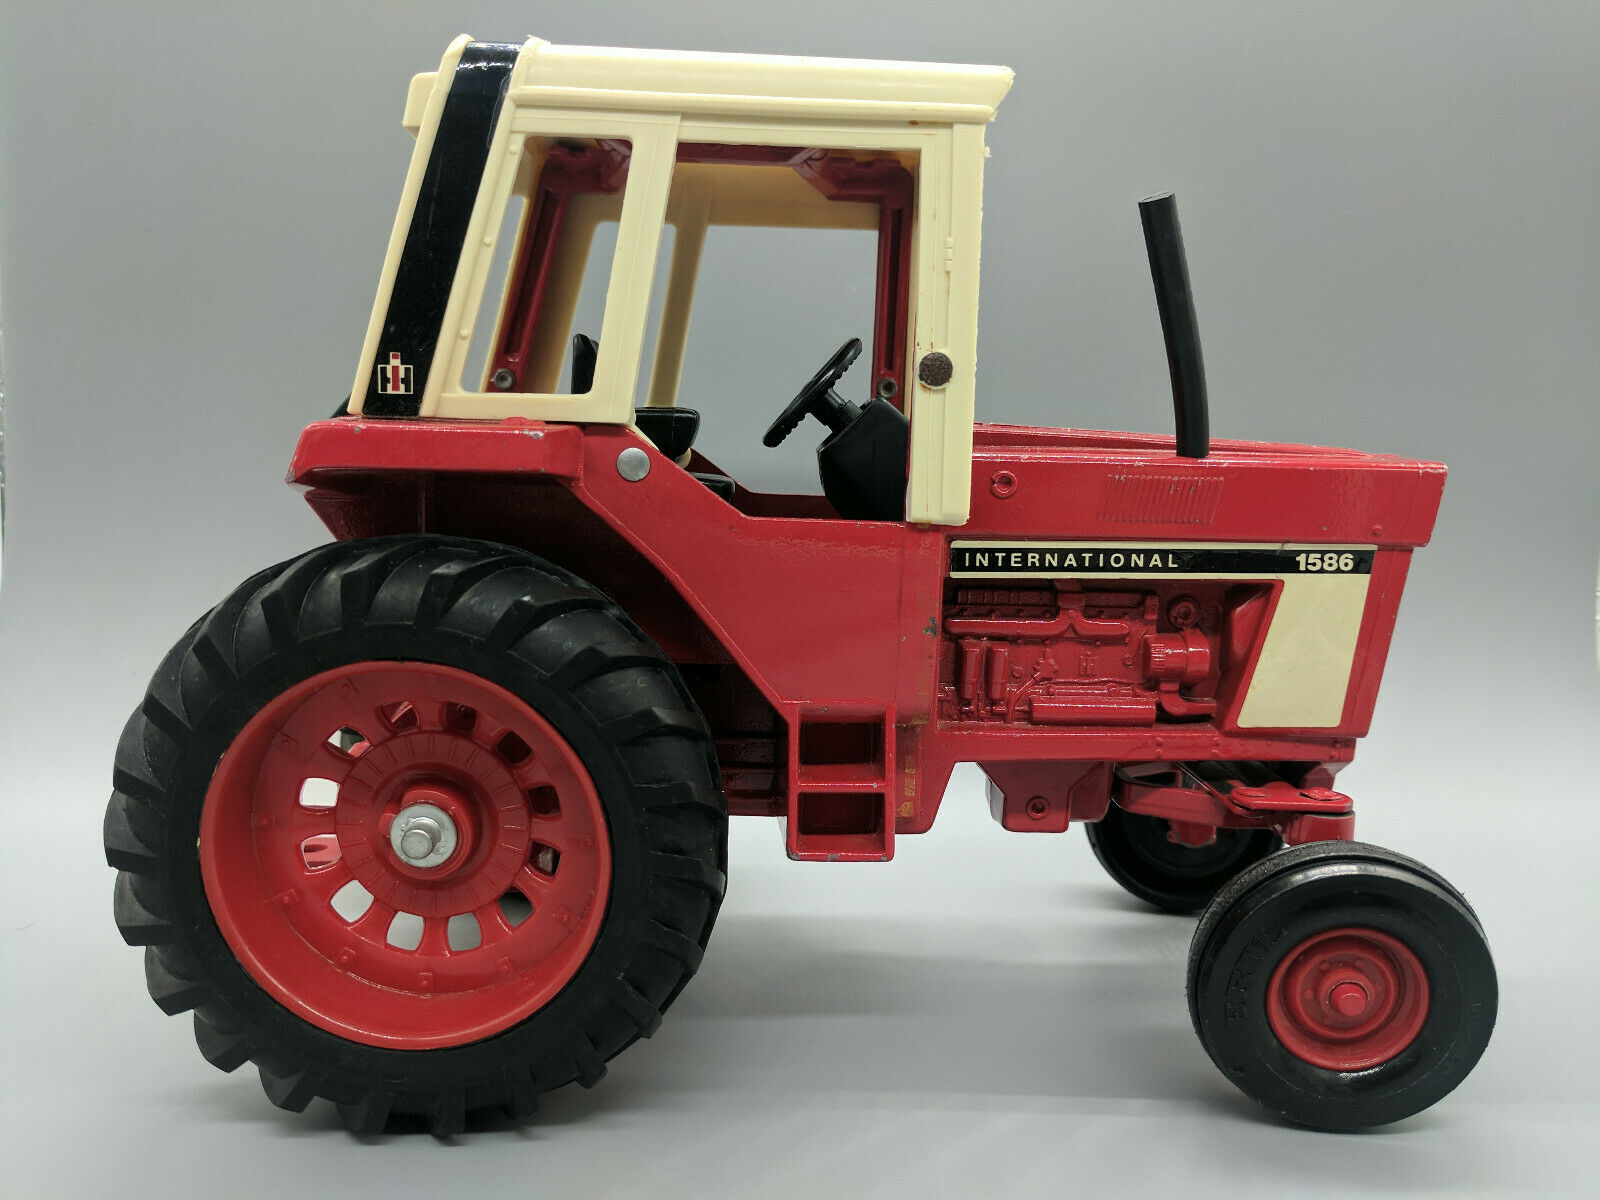 VINTAGE INTERNATIONAL FARMALL 1586 TRACTOR-1 16 SCALE-FREE SHIPPING